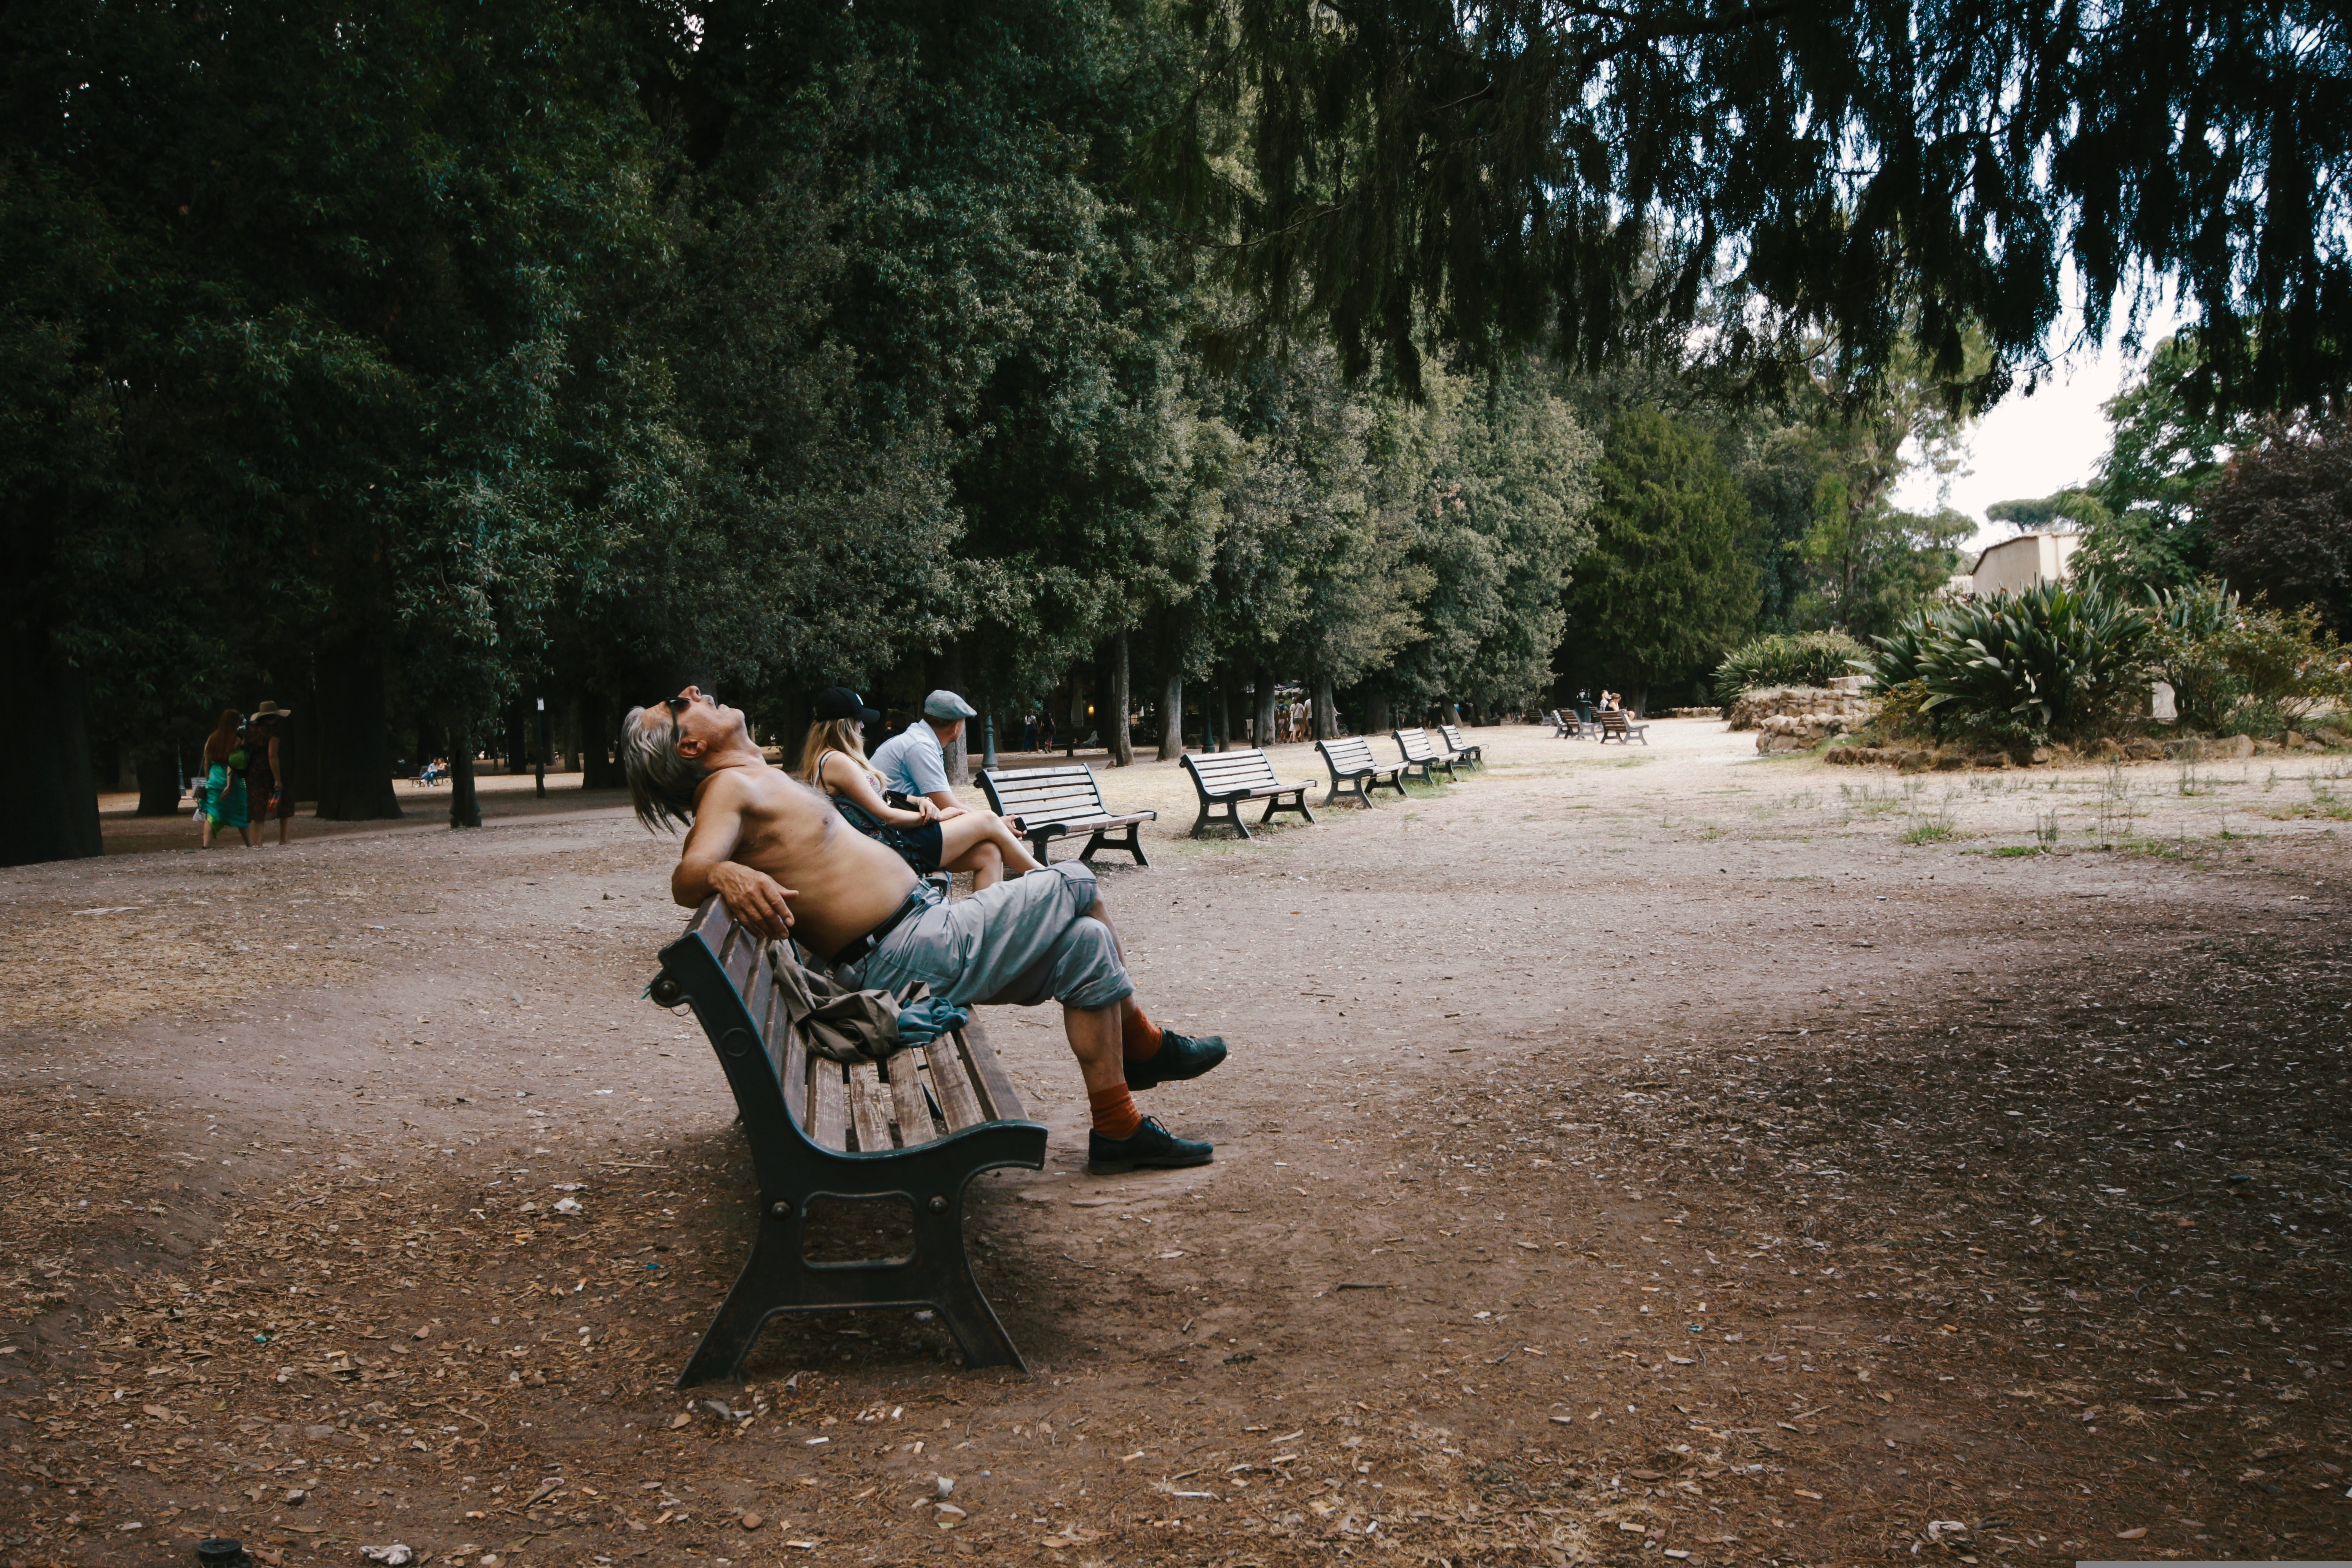 A shirtless man sitting on a bench, sleeping in a park at Villa Borghese